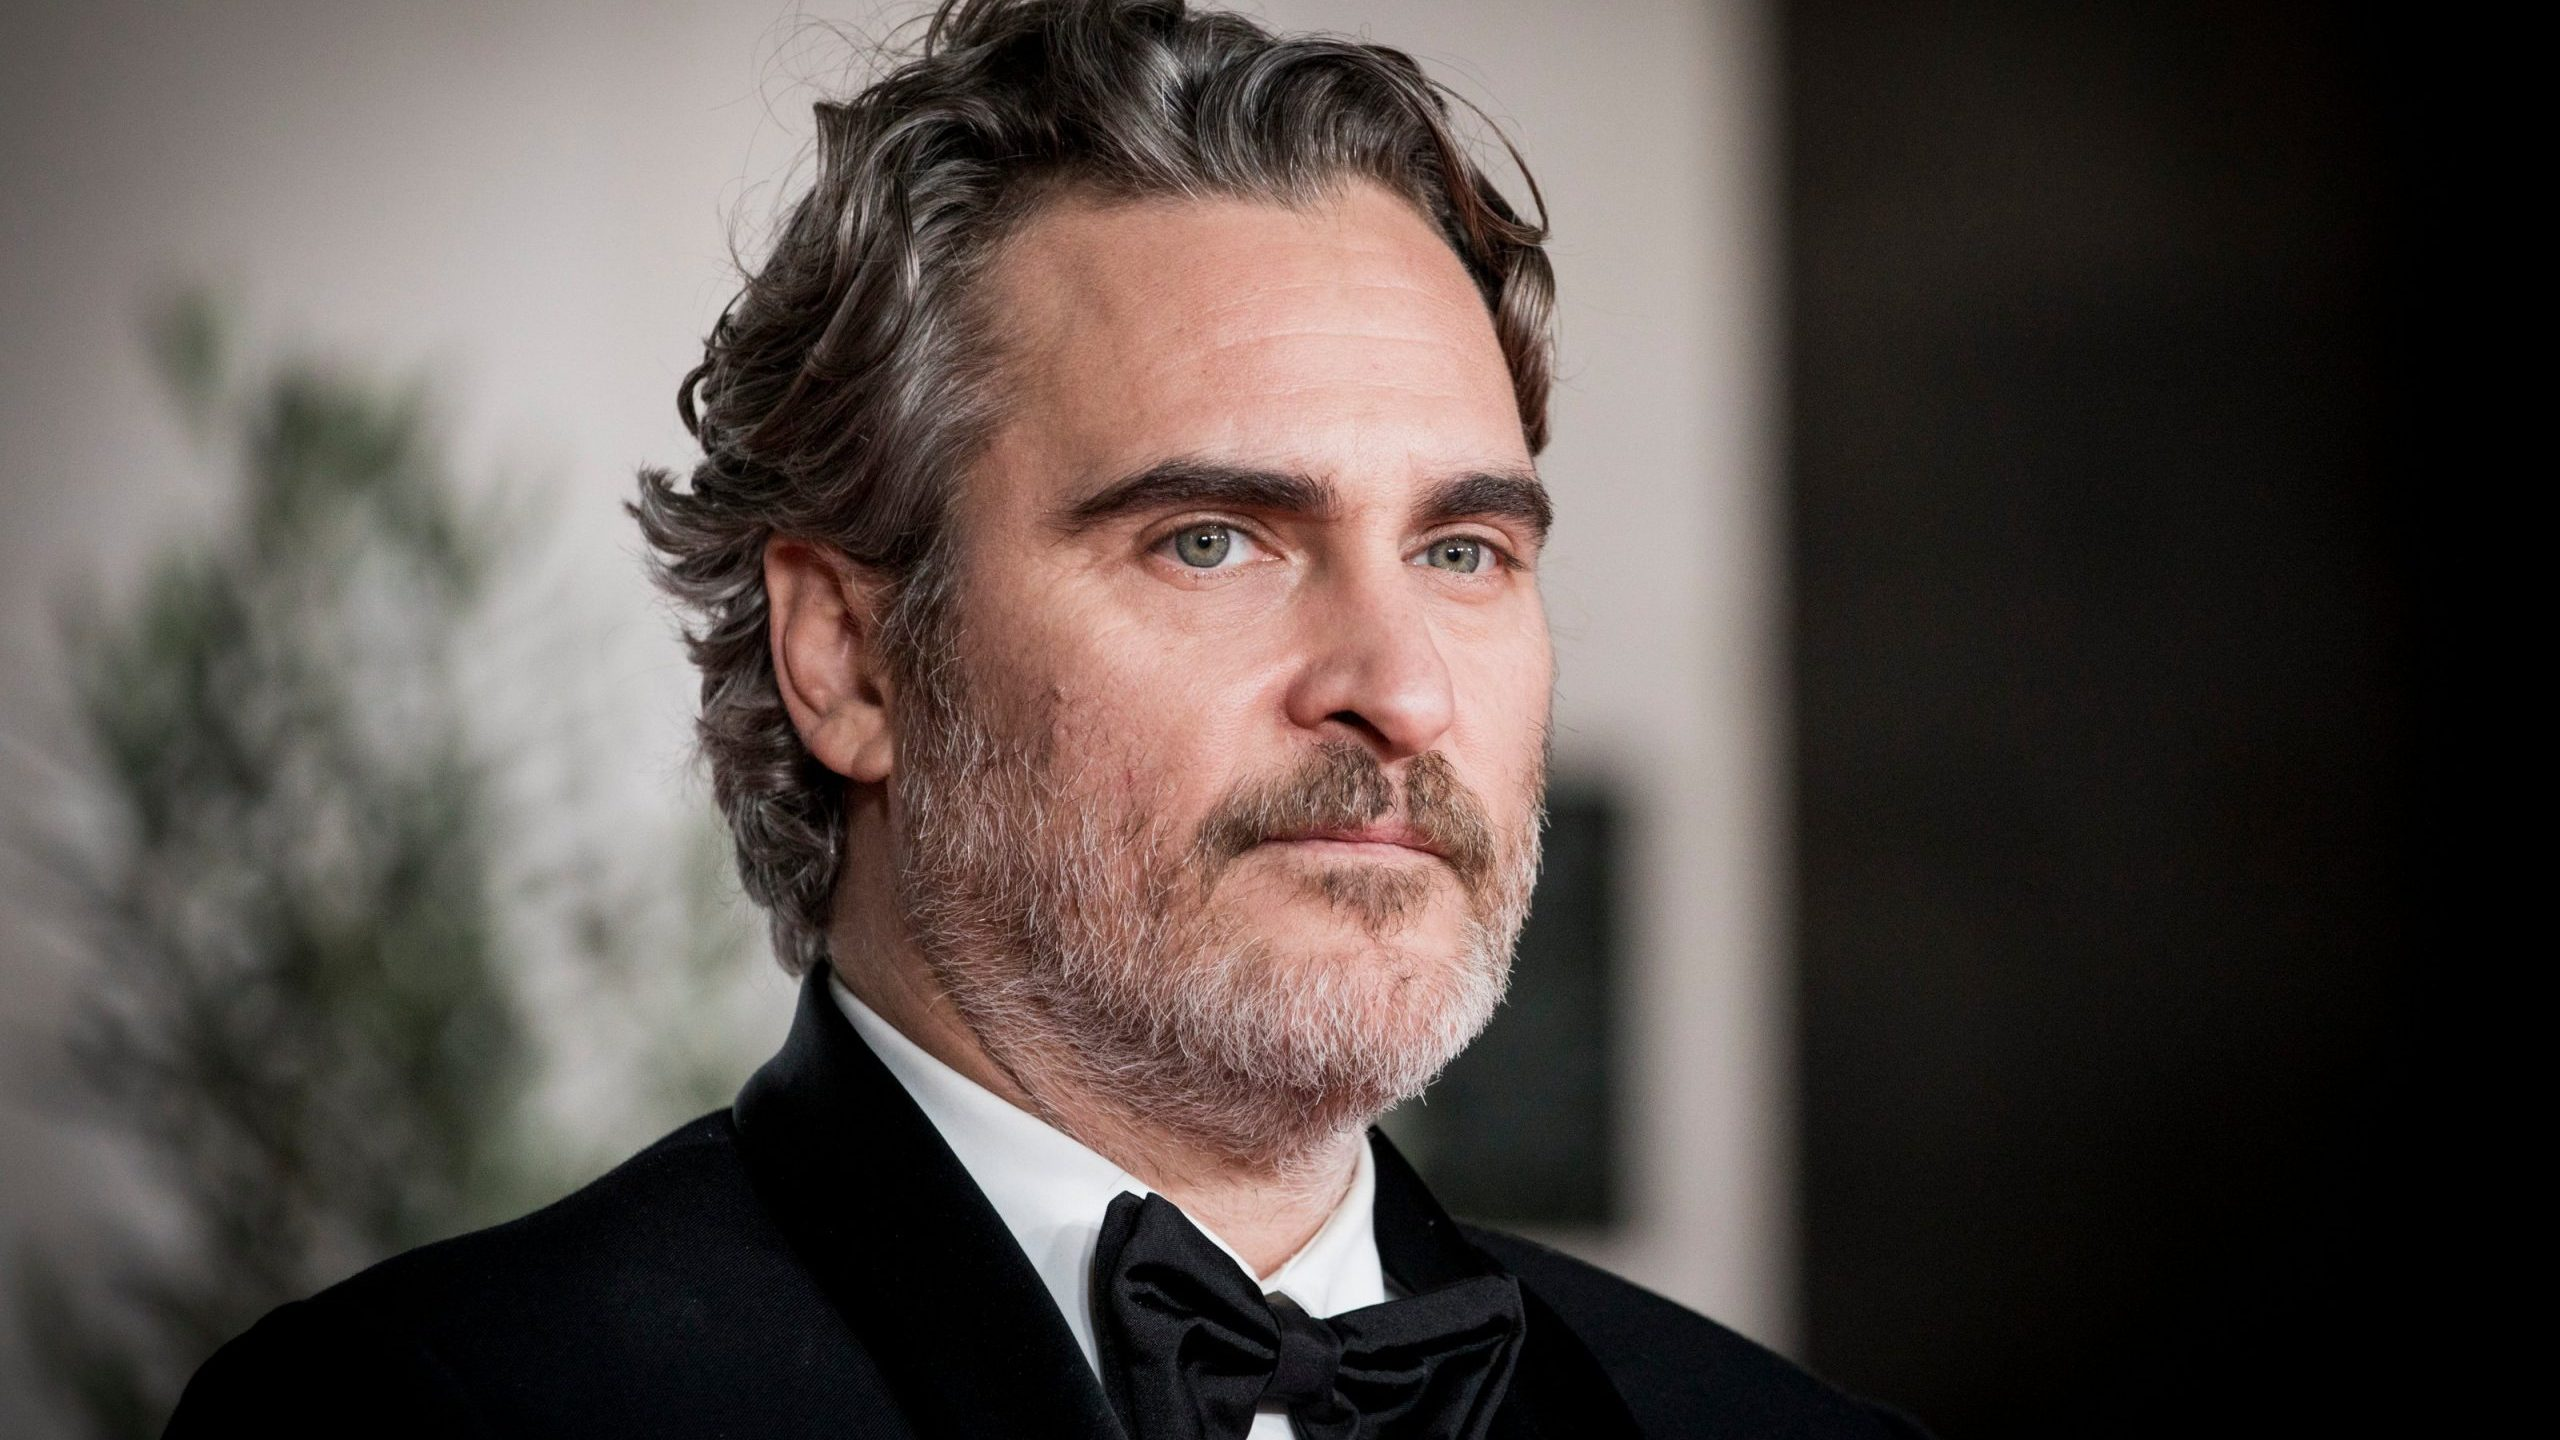 Joaquin Phoenix attends the EE British Academy Film Awards 2020 After Party at The Grosvenor House Hotel on February 02, 2020 in London, England. (Credit: Tristan Fewings/Getty Images)